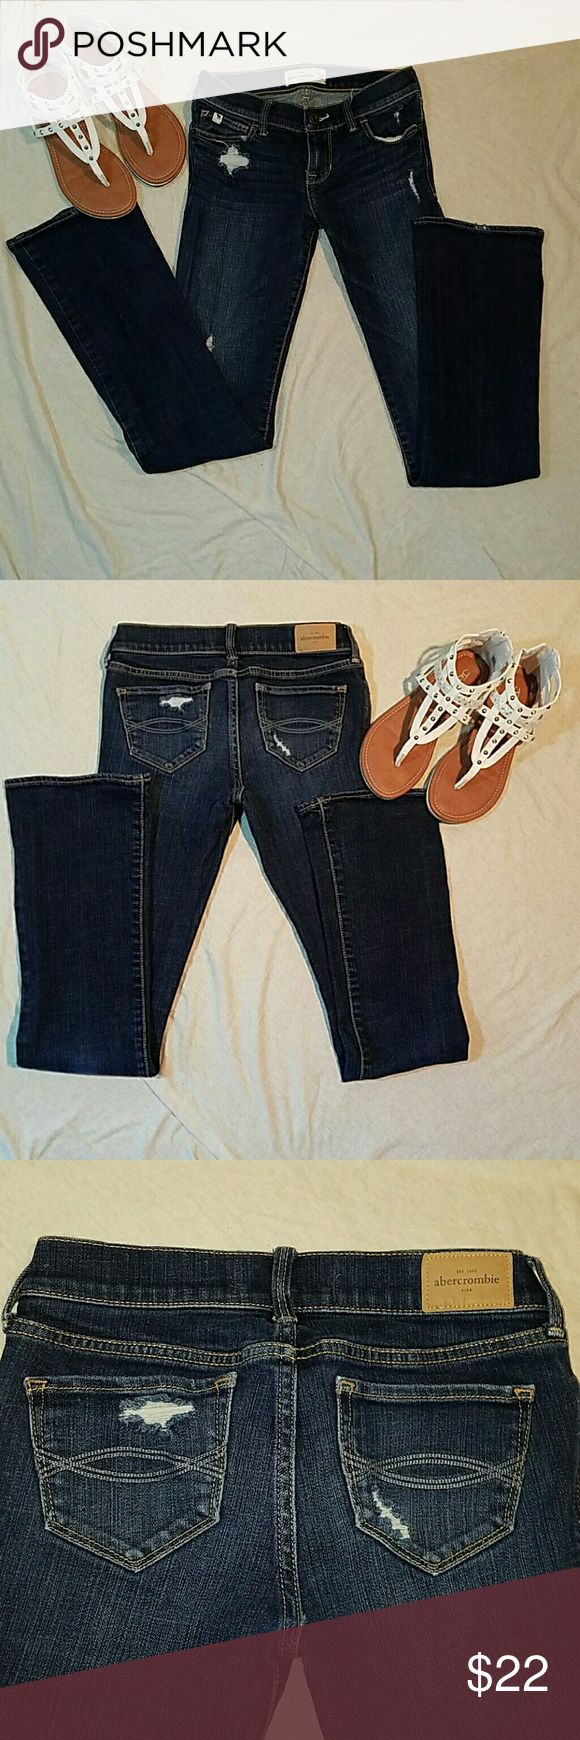 Abercrombie Girls 14 slim distressed girls Jeans Like new girls dark wash distressed Abercrombie 99% cotton 1% elastane bootcut Abercrombie & Fitch Bottoms Jeans